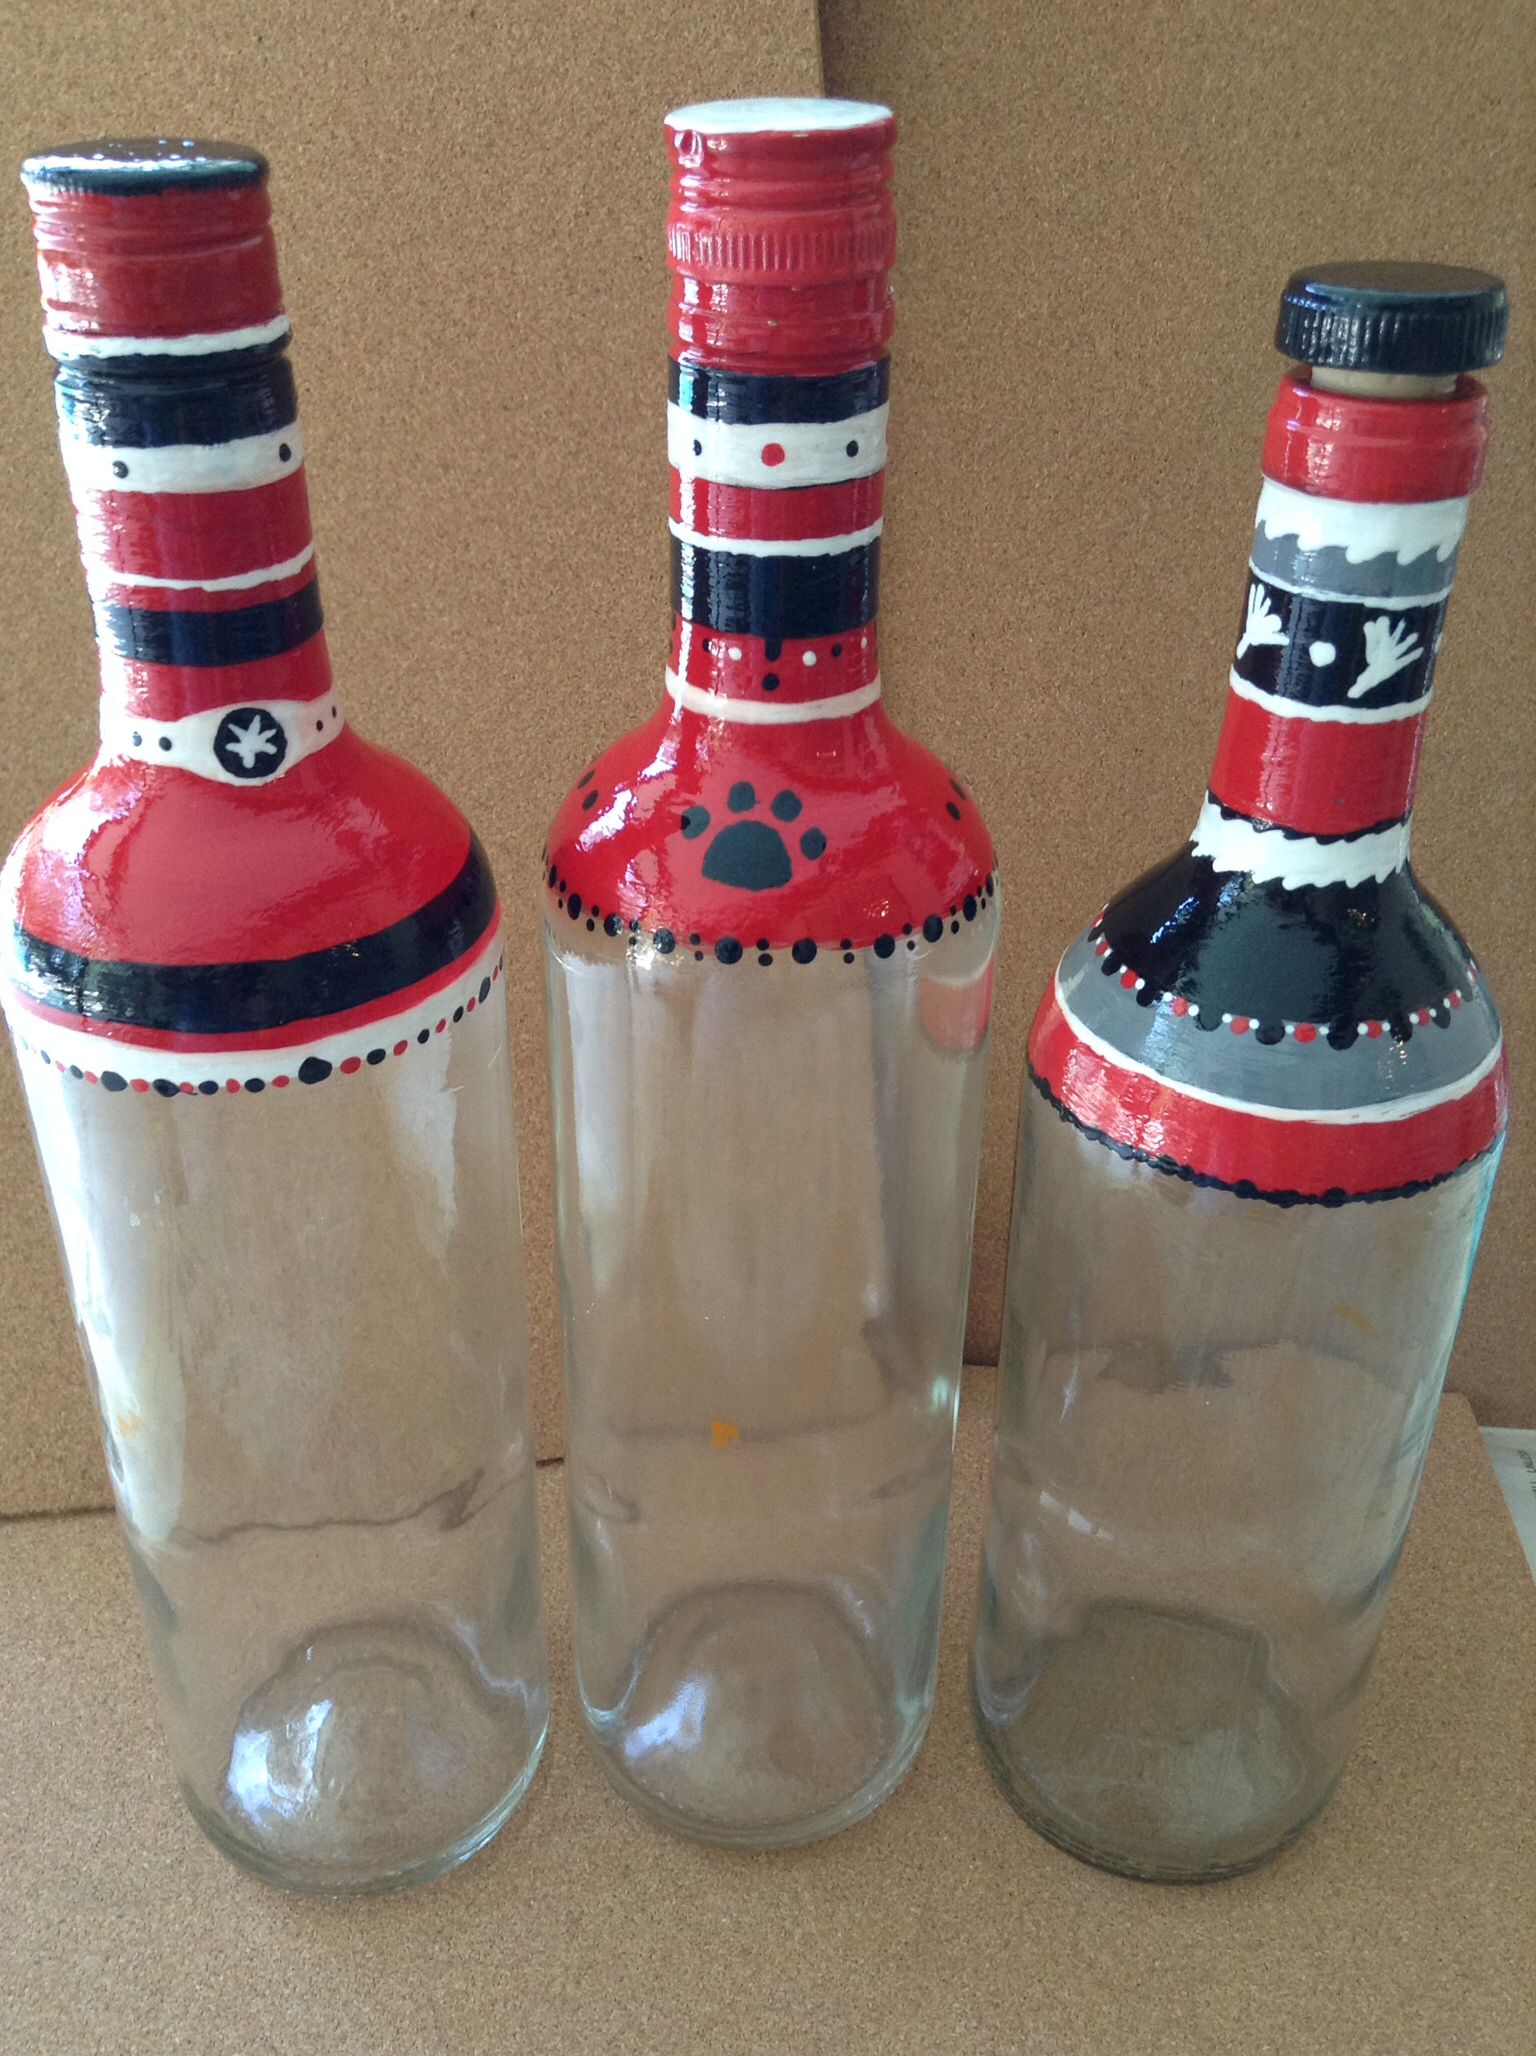 Recycled Wine And Liquor Bottles Hand Painted Football Theme Bottle Ready To Fill With Nuts Ohio State And Georgia B Bottle Crafts Wine And Liquor Diy Glass